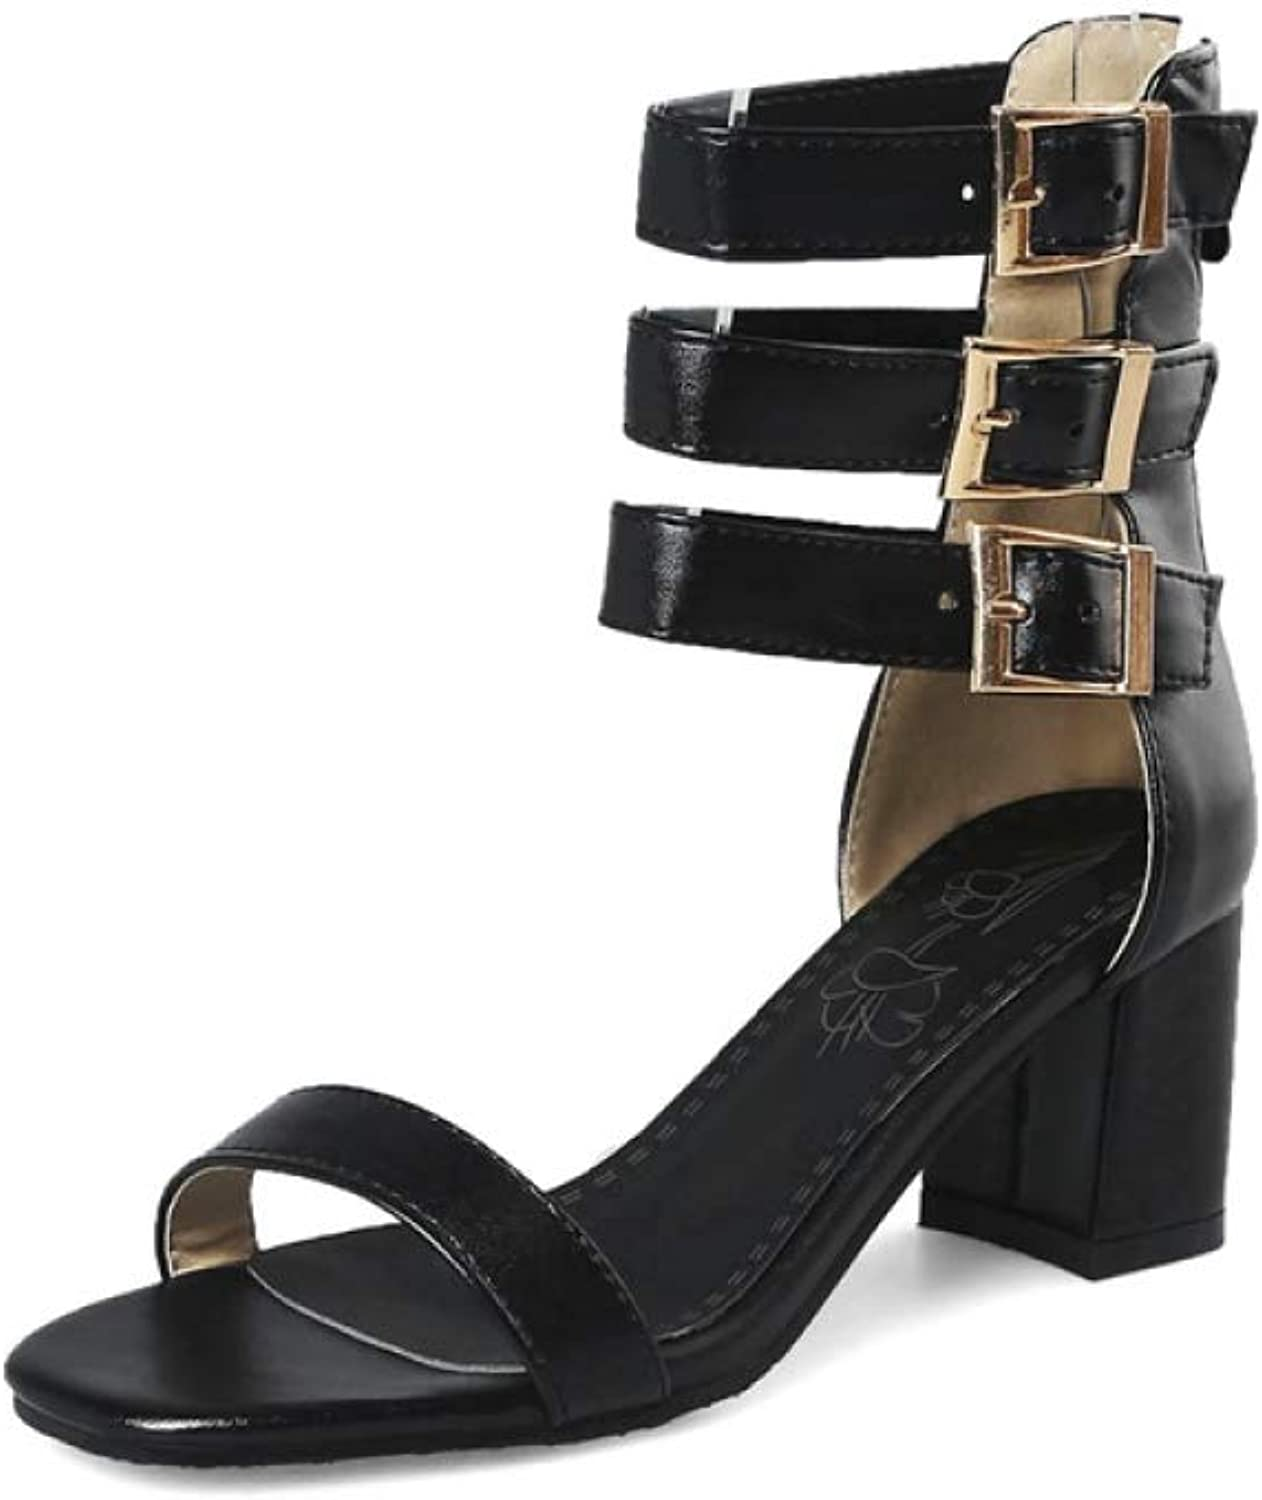 T-JULY Fashion Gladiator Sandals Square High Heels Buckle Women Sandals Summer Ladies Dress shoes